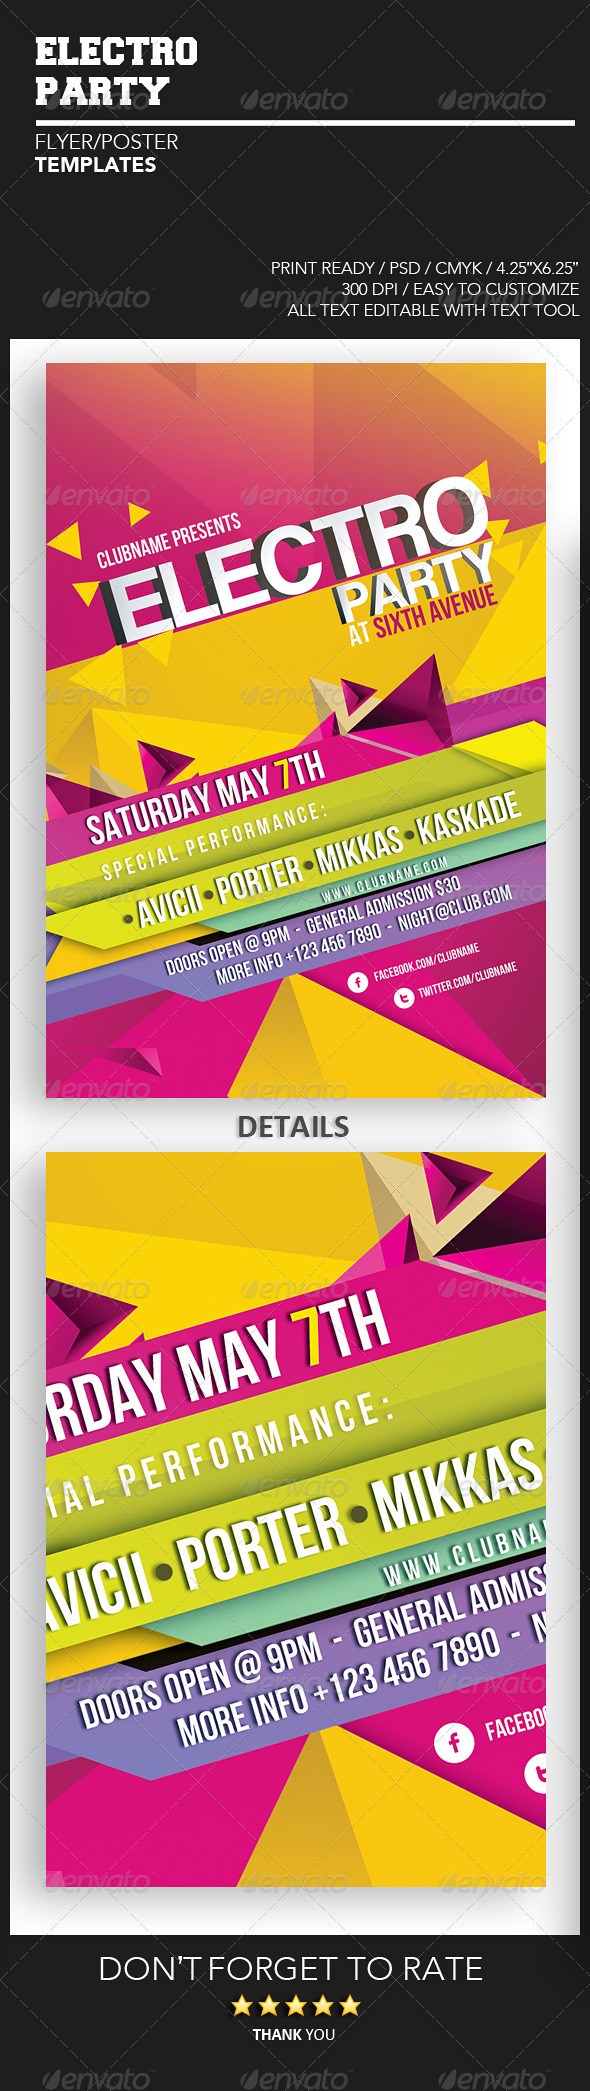 GraphicRiver Electro Party Flyer Template 4477171